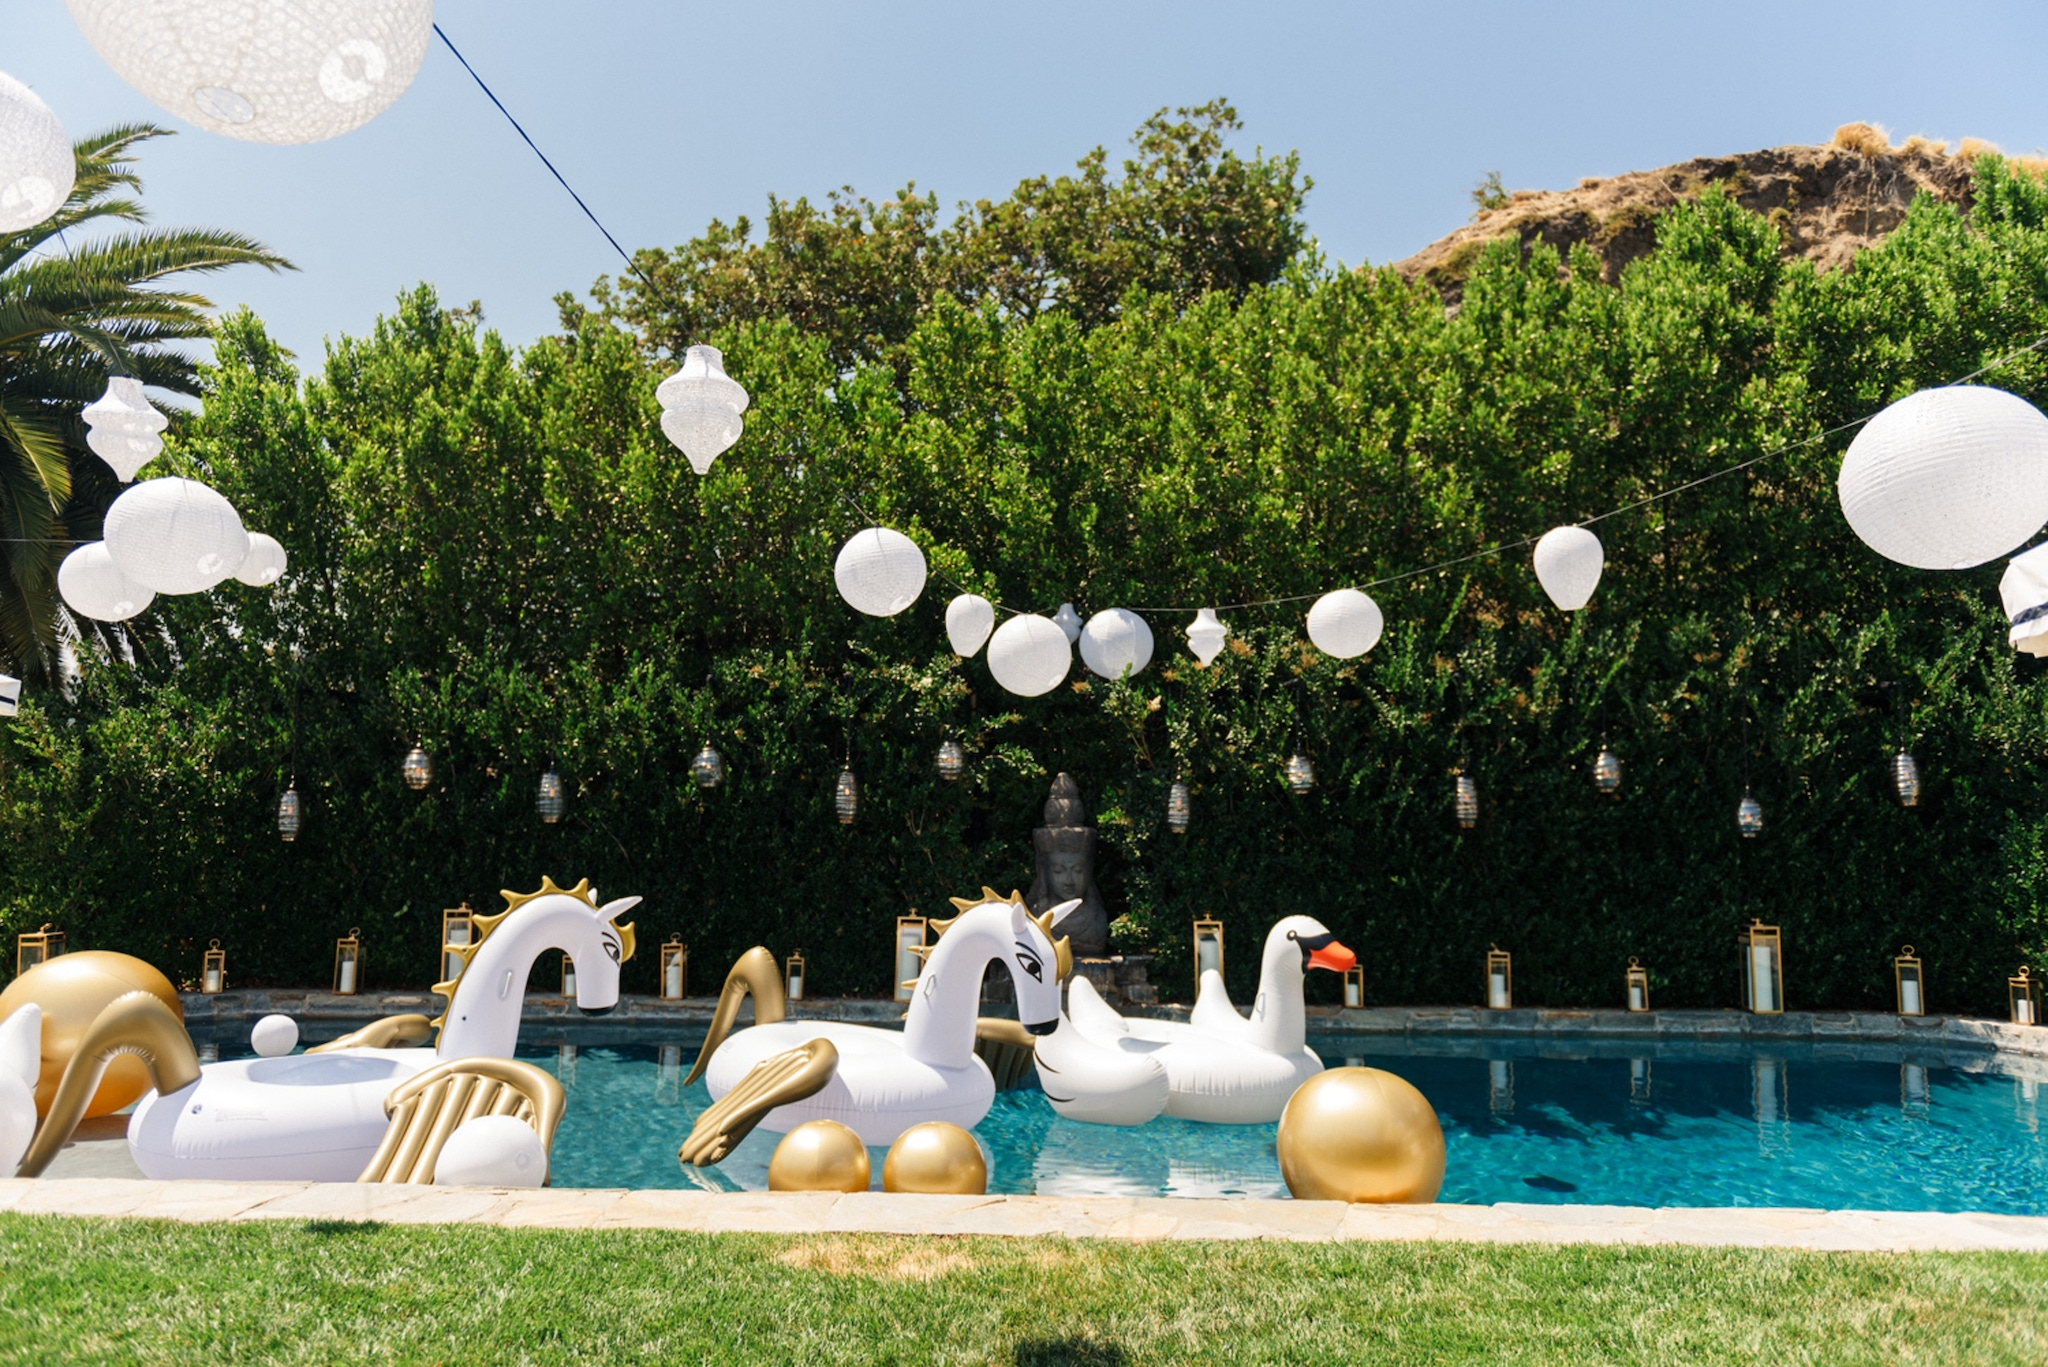 Flamingo pool floats